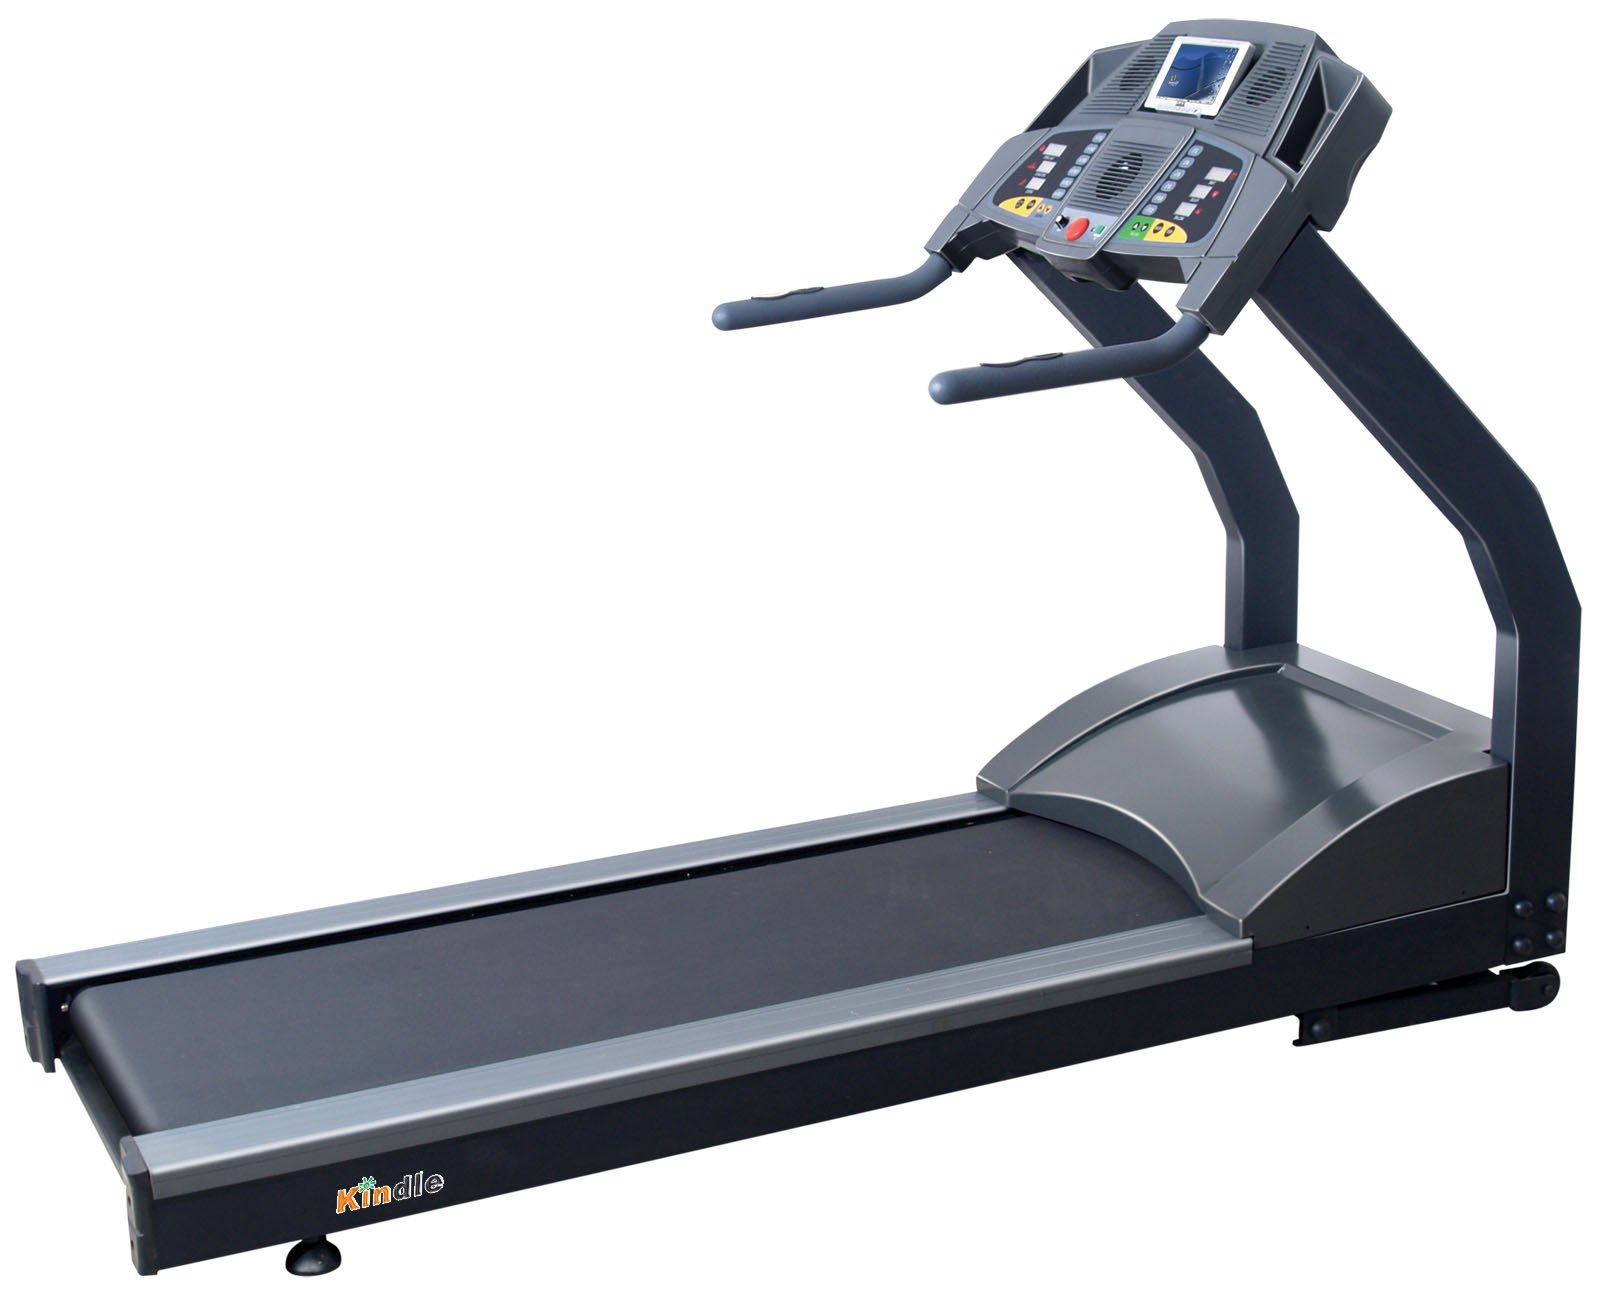 Gym and exercise equipments health consciousness drive